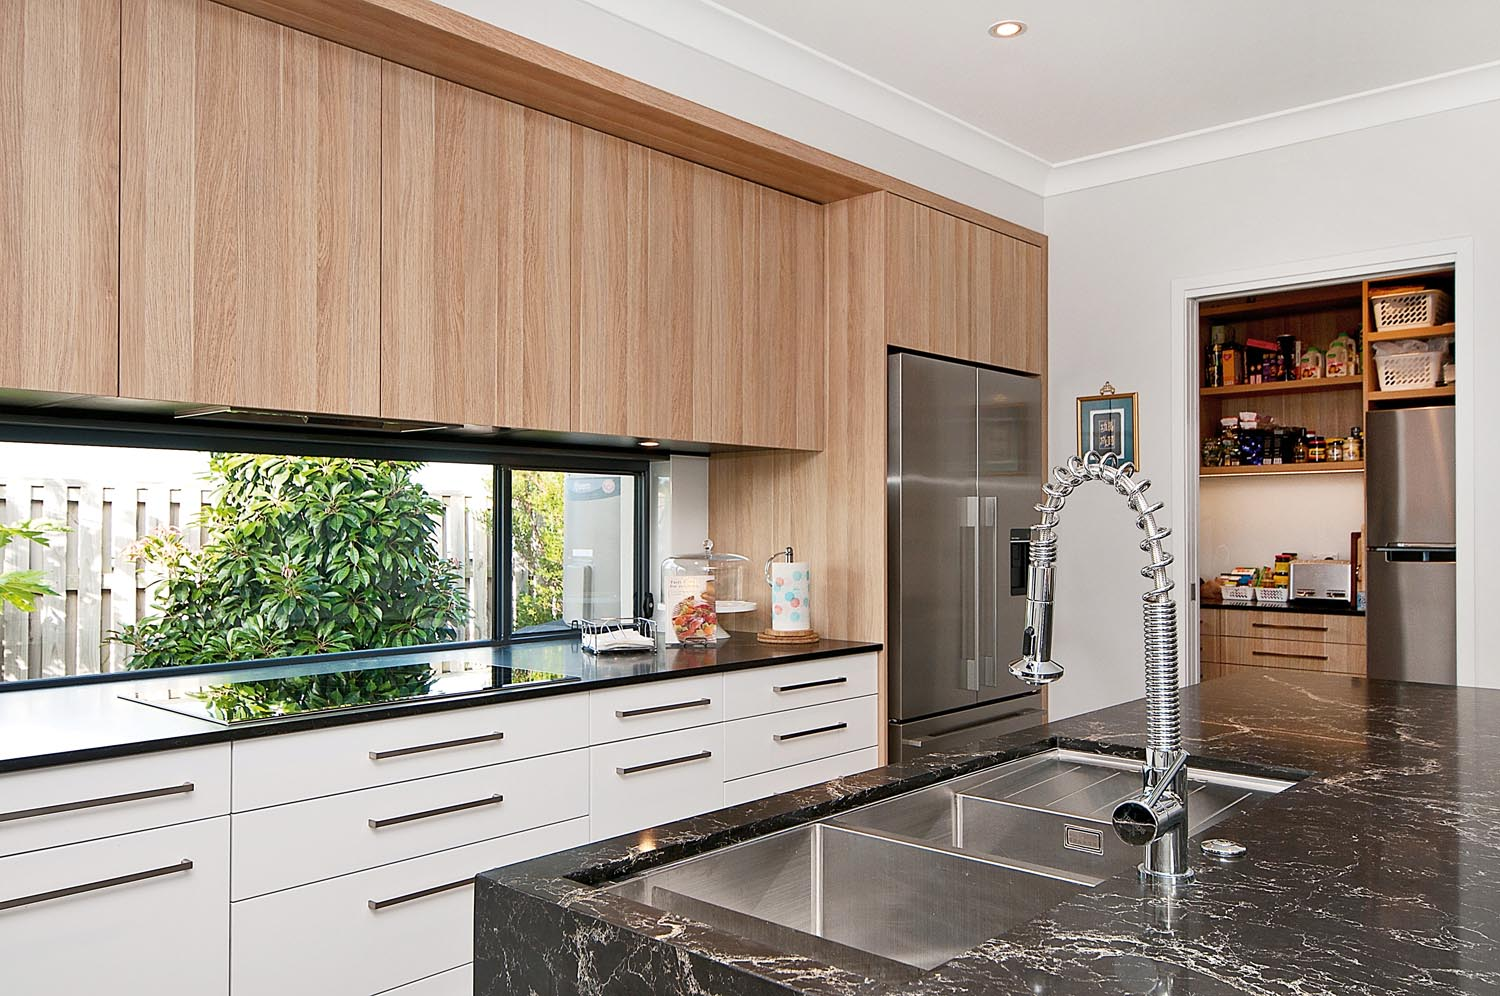 Kitchen Remodeling Design Ideas Inspiration: Neat And Clean: Kitchen Design